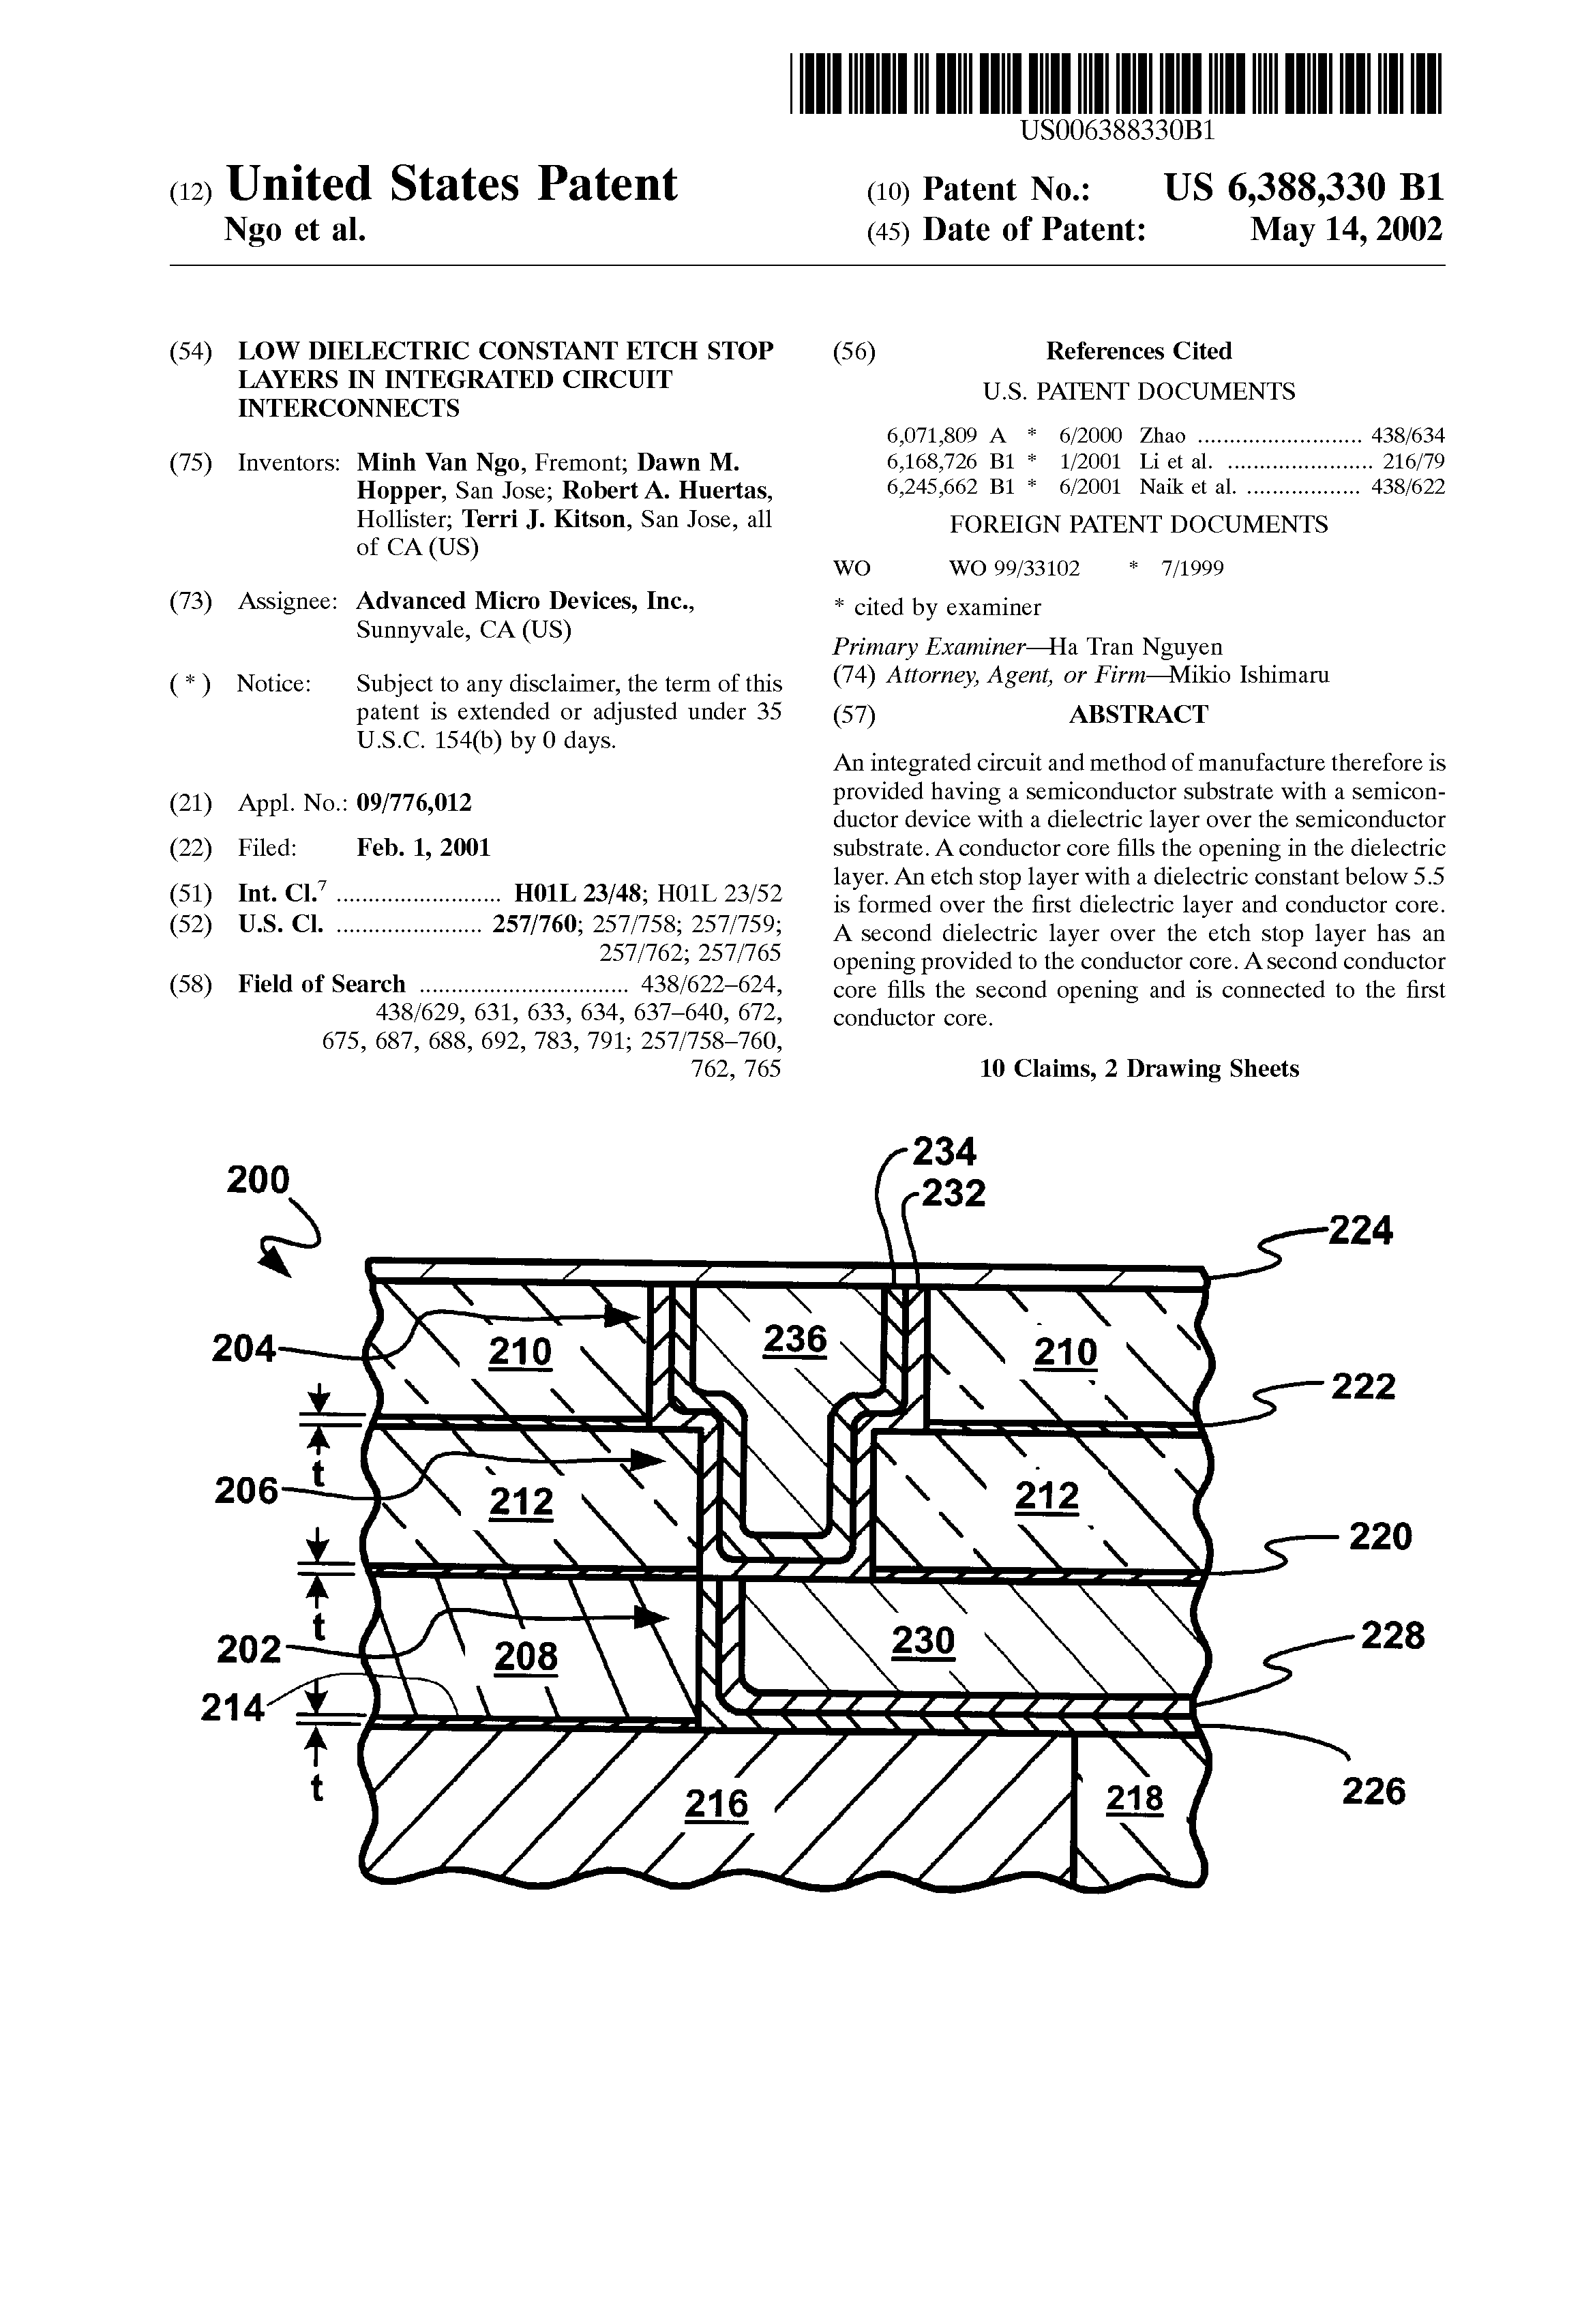 Us 6388330 B1 Low Dielectric Constant Etch Stop Layers In What Is An Integrated Circuit 7 Page 1